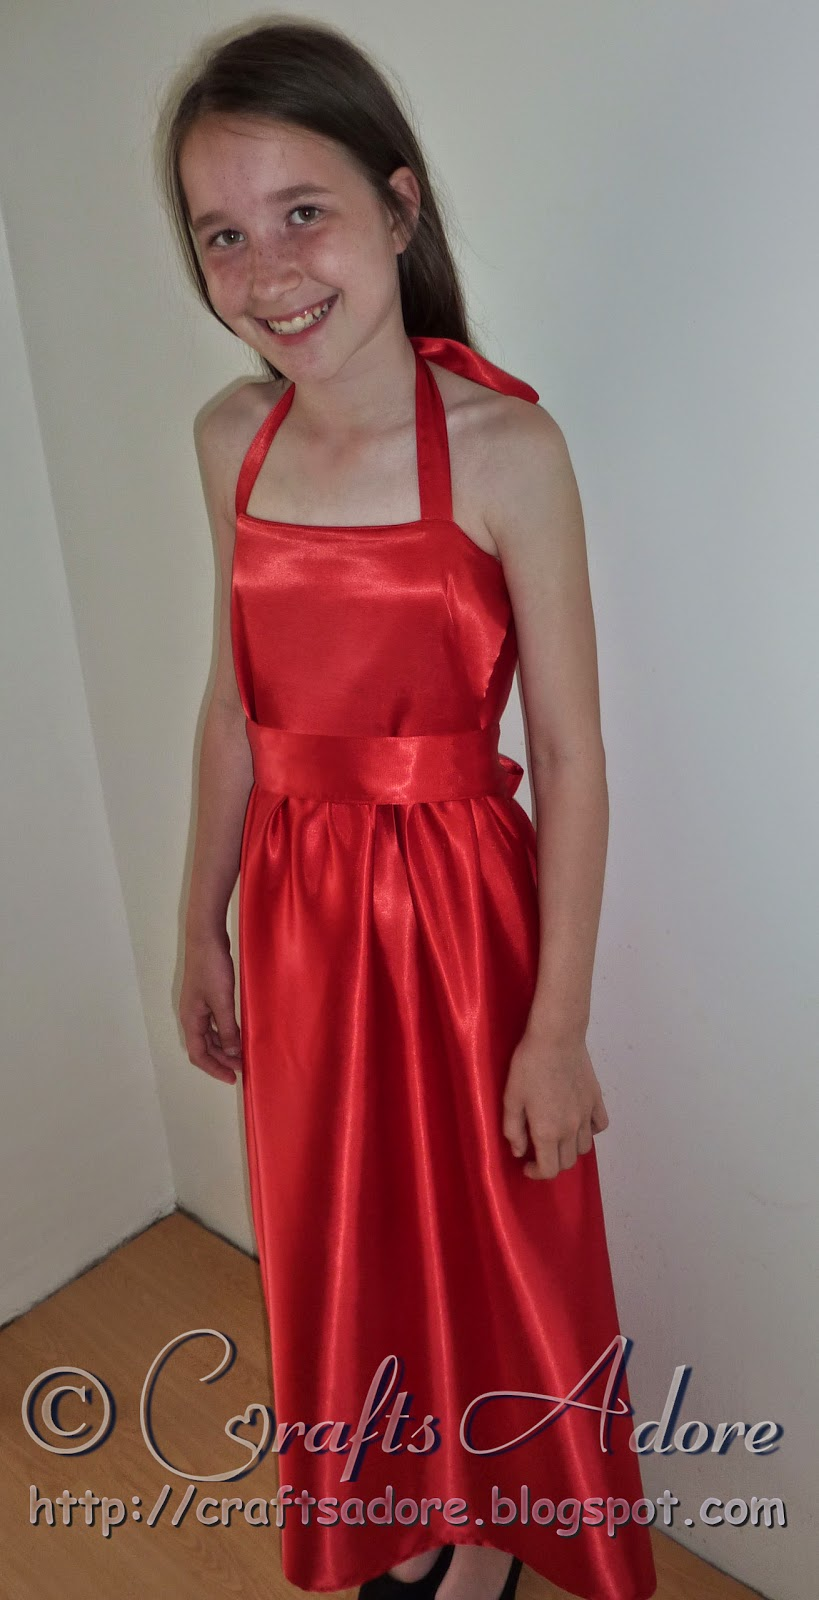 Craftsadore Sewing Prom Dress From Free Dress Sewing Tutorial